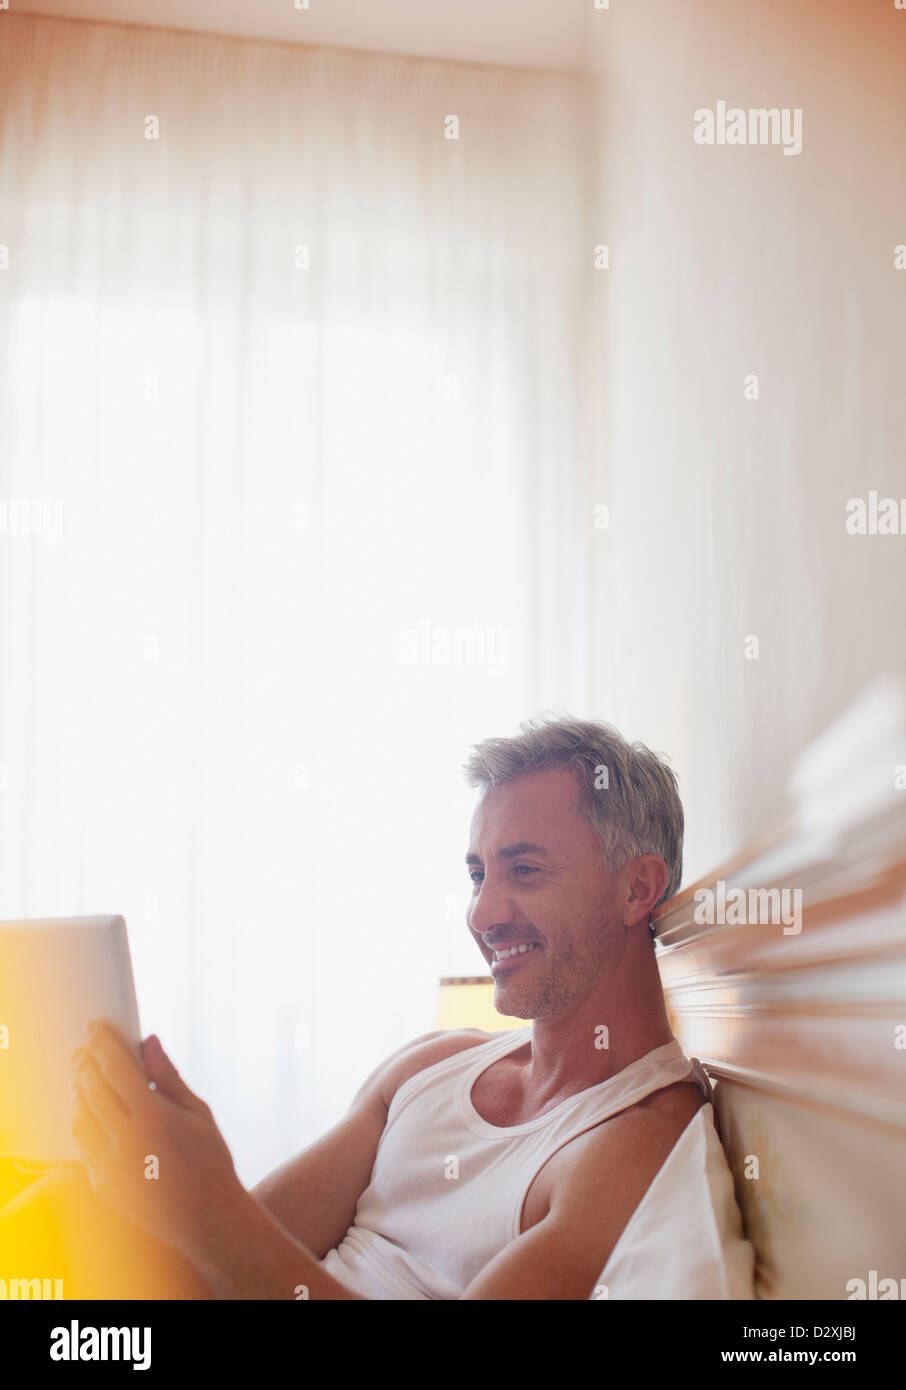 Smiling man using digital tablet in bed - Stock Image